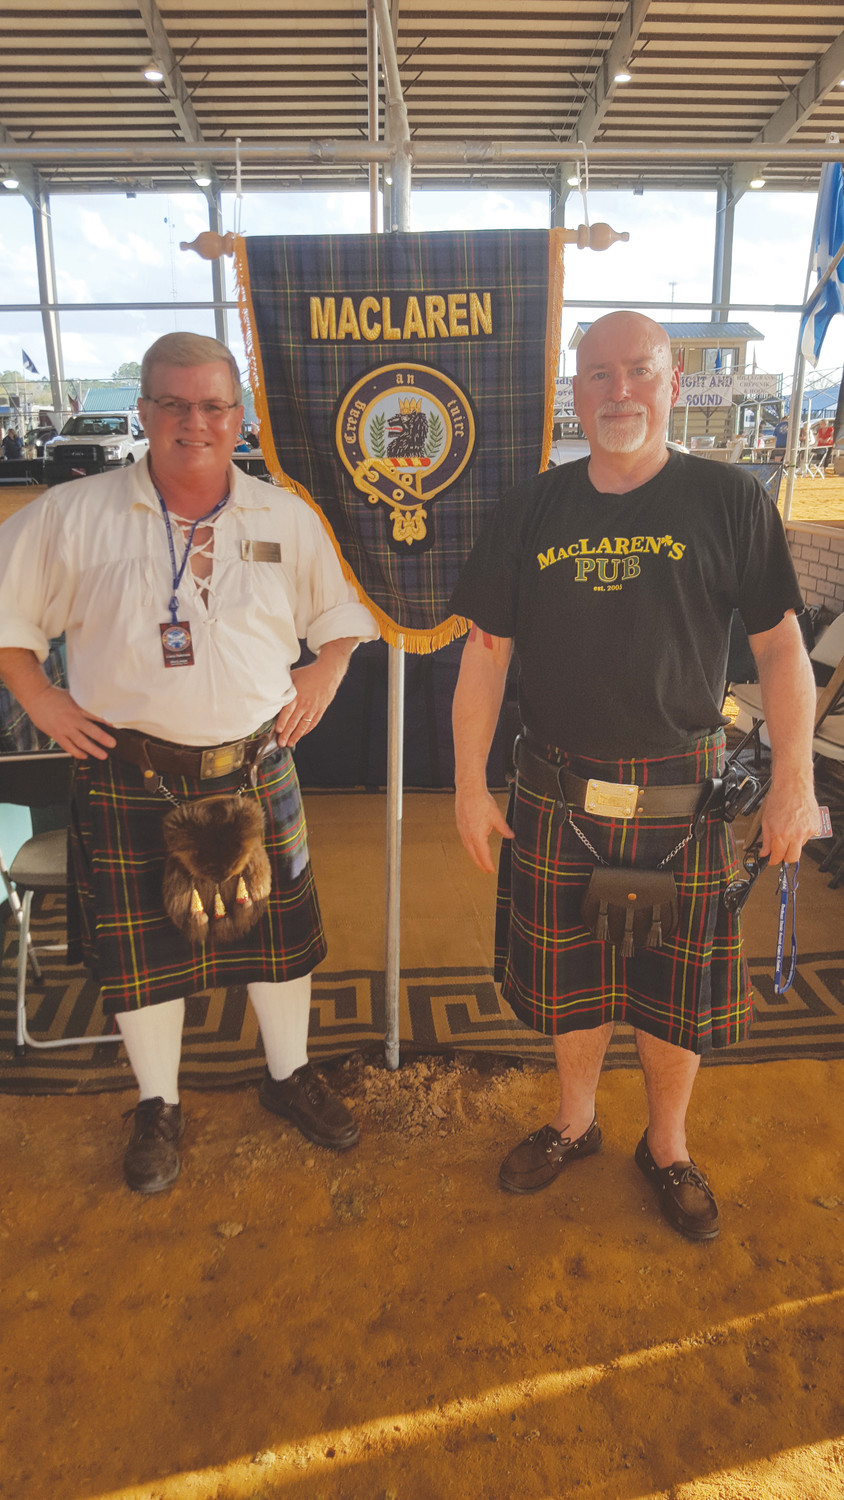 Left to Right: Clan MacLaren representatives Corey L. Patterson and Joe Clark